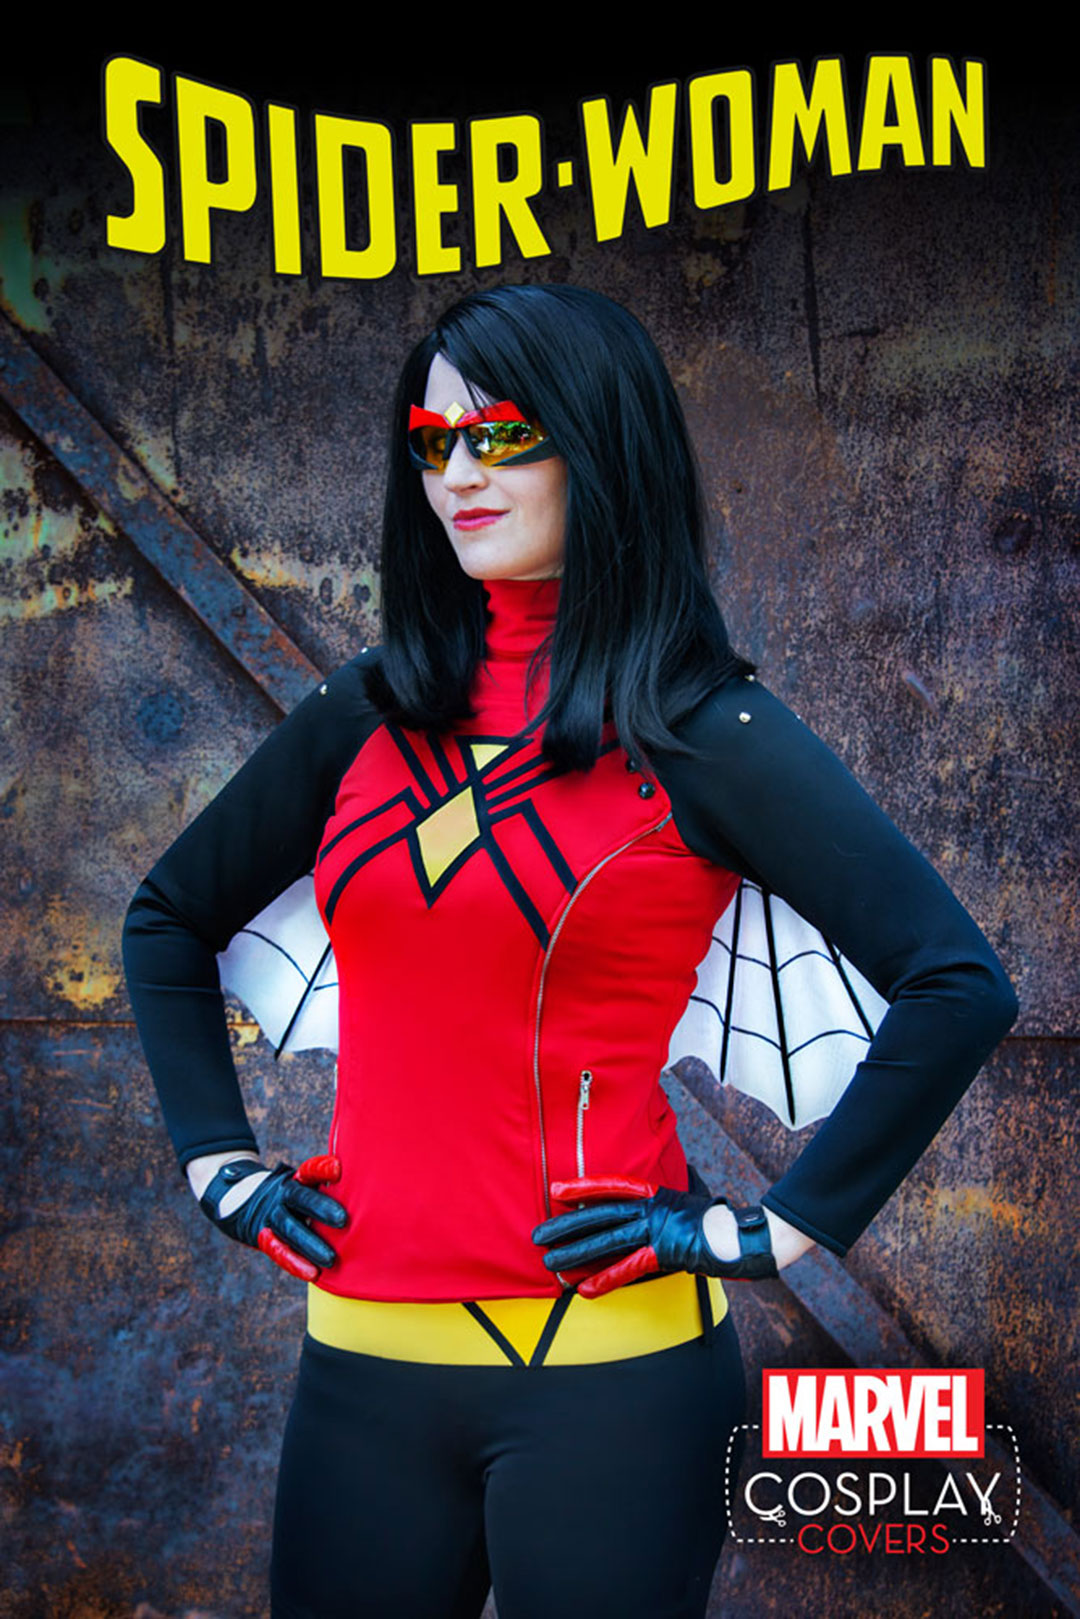 Couverture-Marvel-cosplay (14)